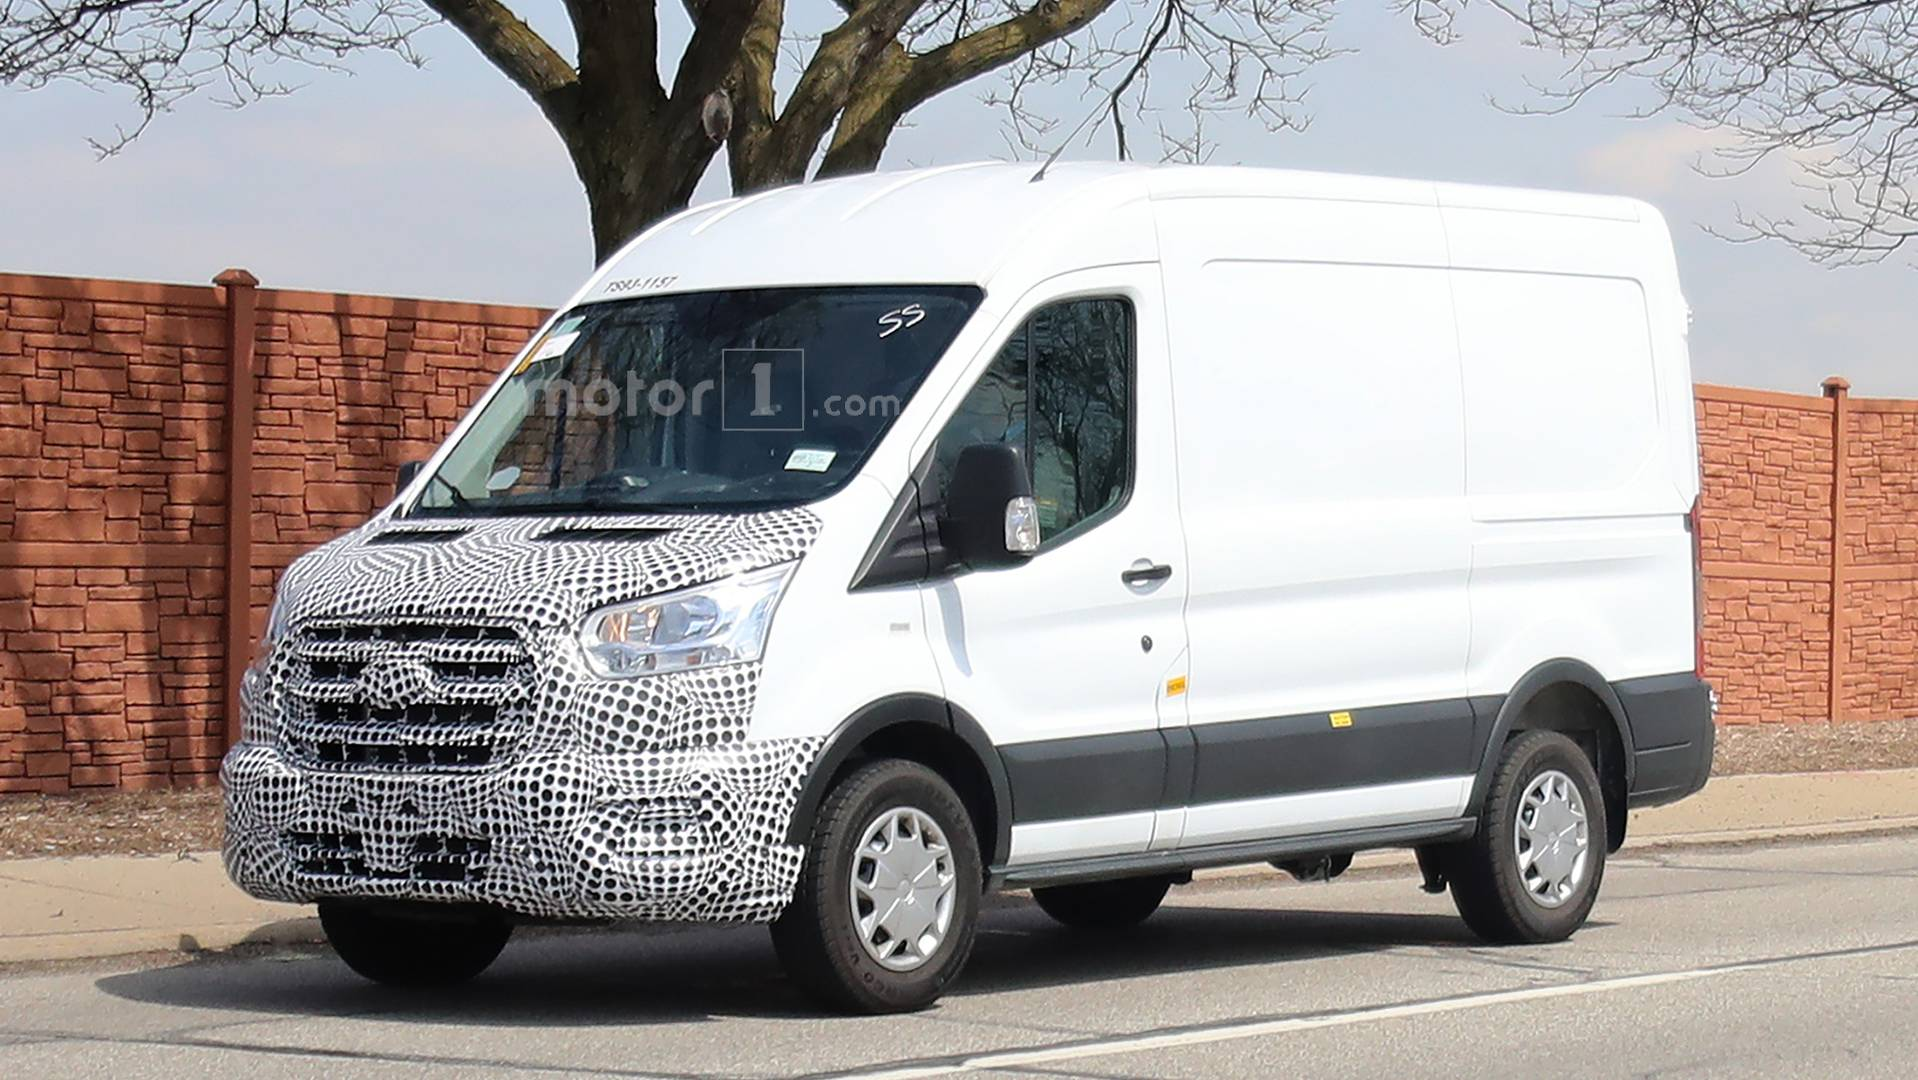 Spoiler alert 2019 ford transit spied still looks like van